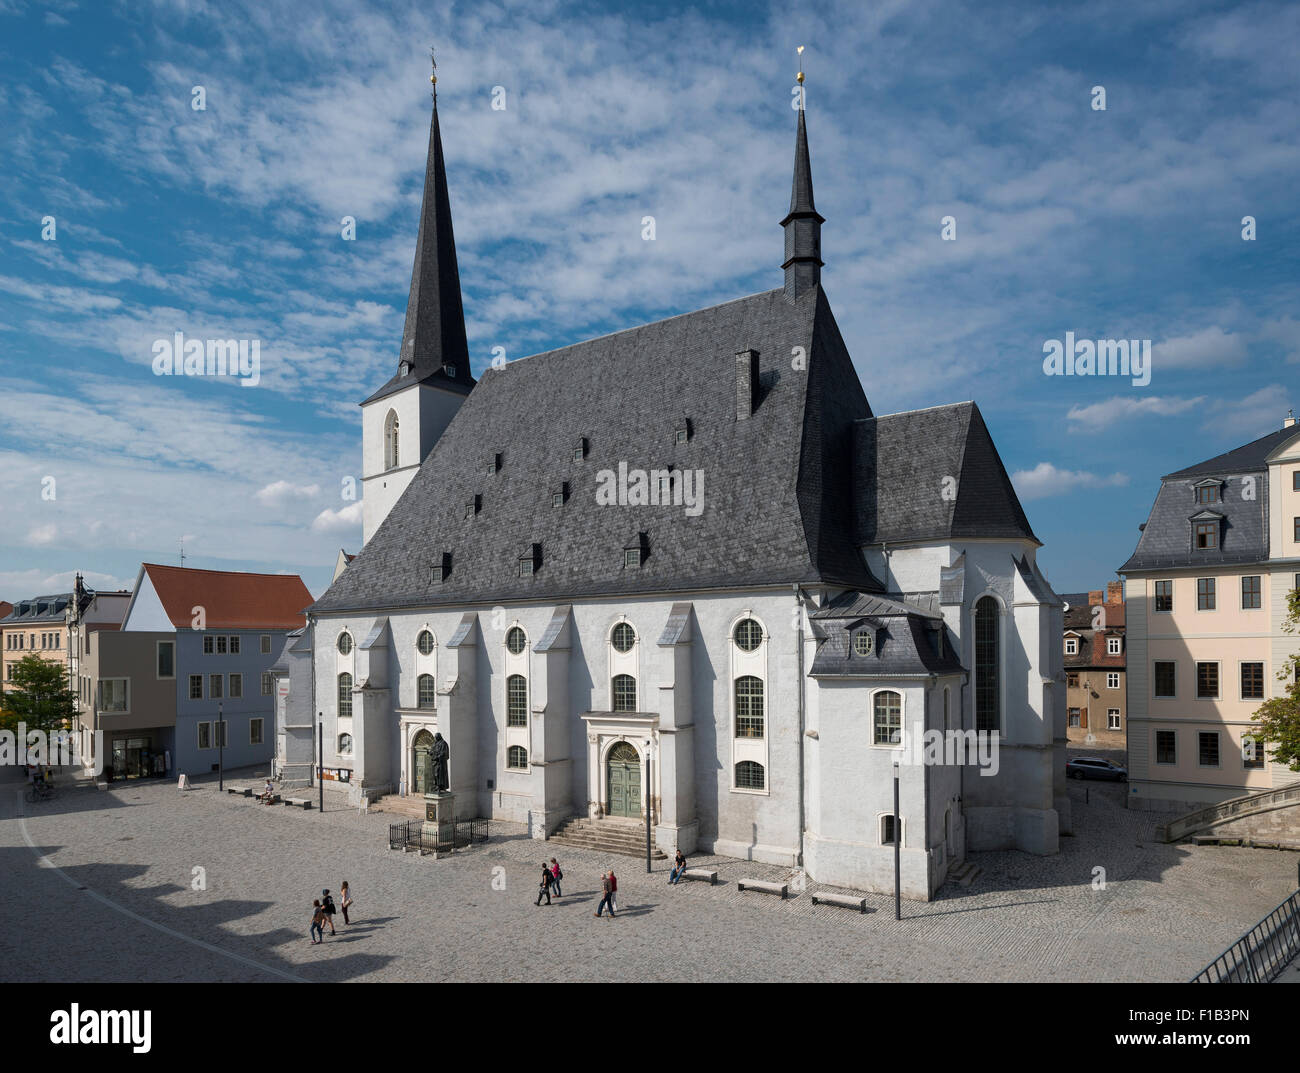 Church of St. Peter and St. Paul, also Herder Church, Herderplatz, Weimar, Thuringia, Germany - Stock Image